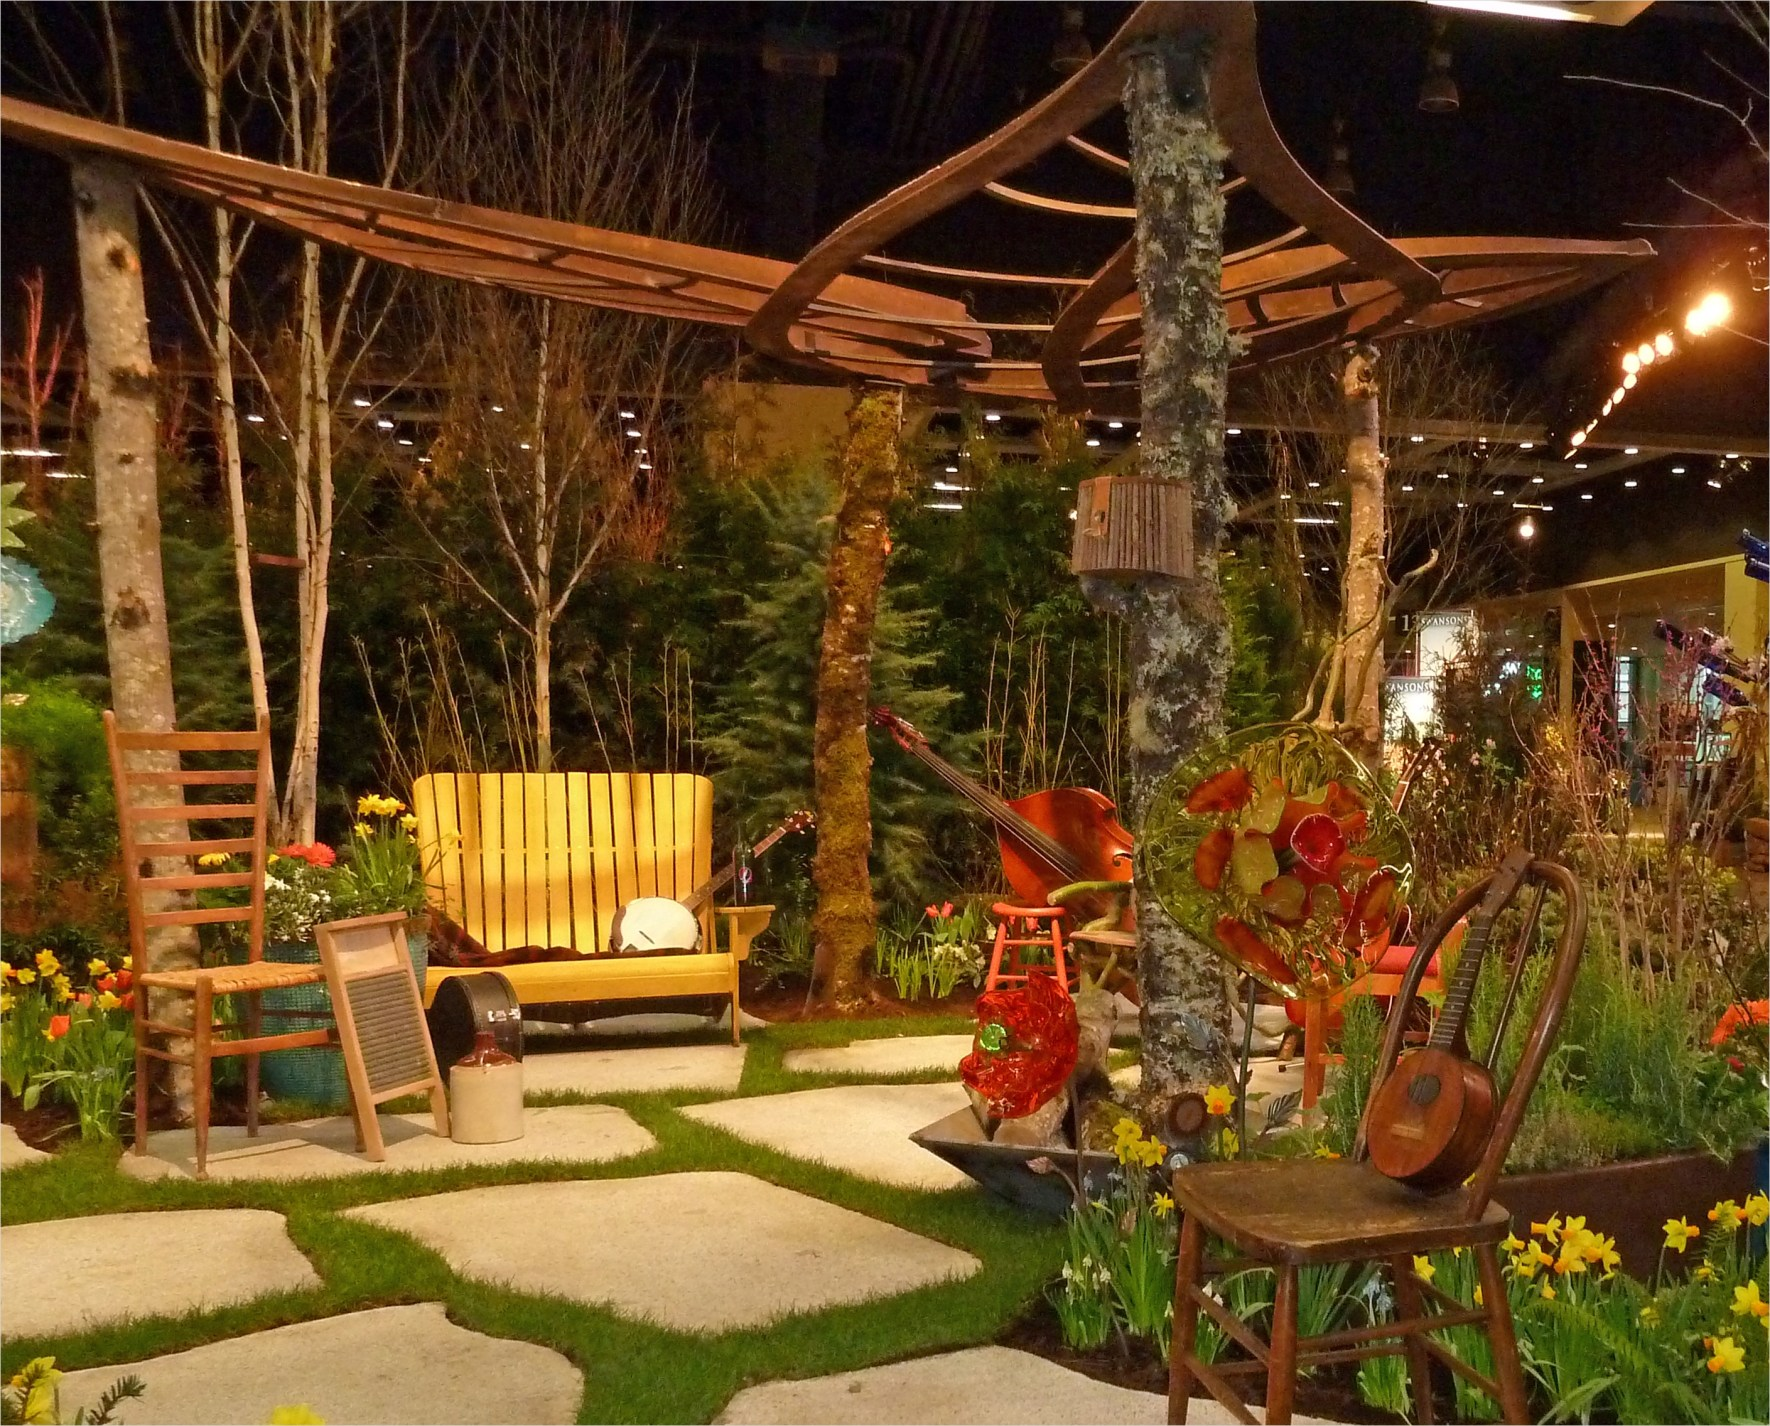 42 Cozy Small Outdoor Living Spaces 51 Outdoor Spaces 1